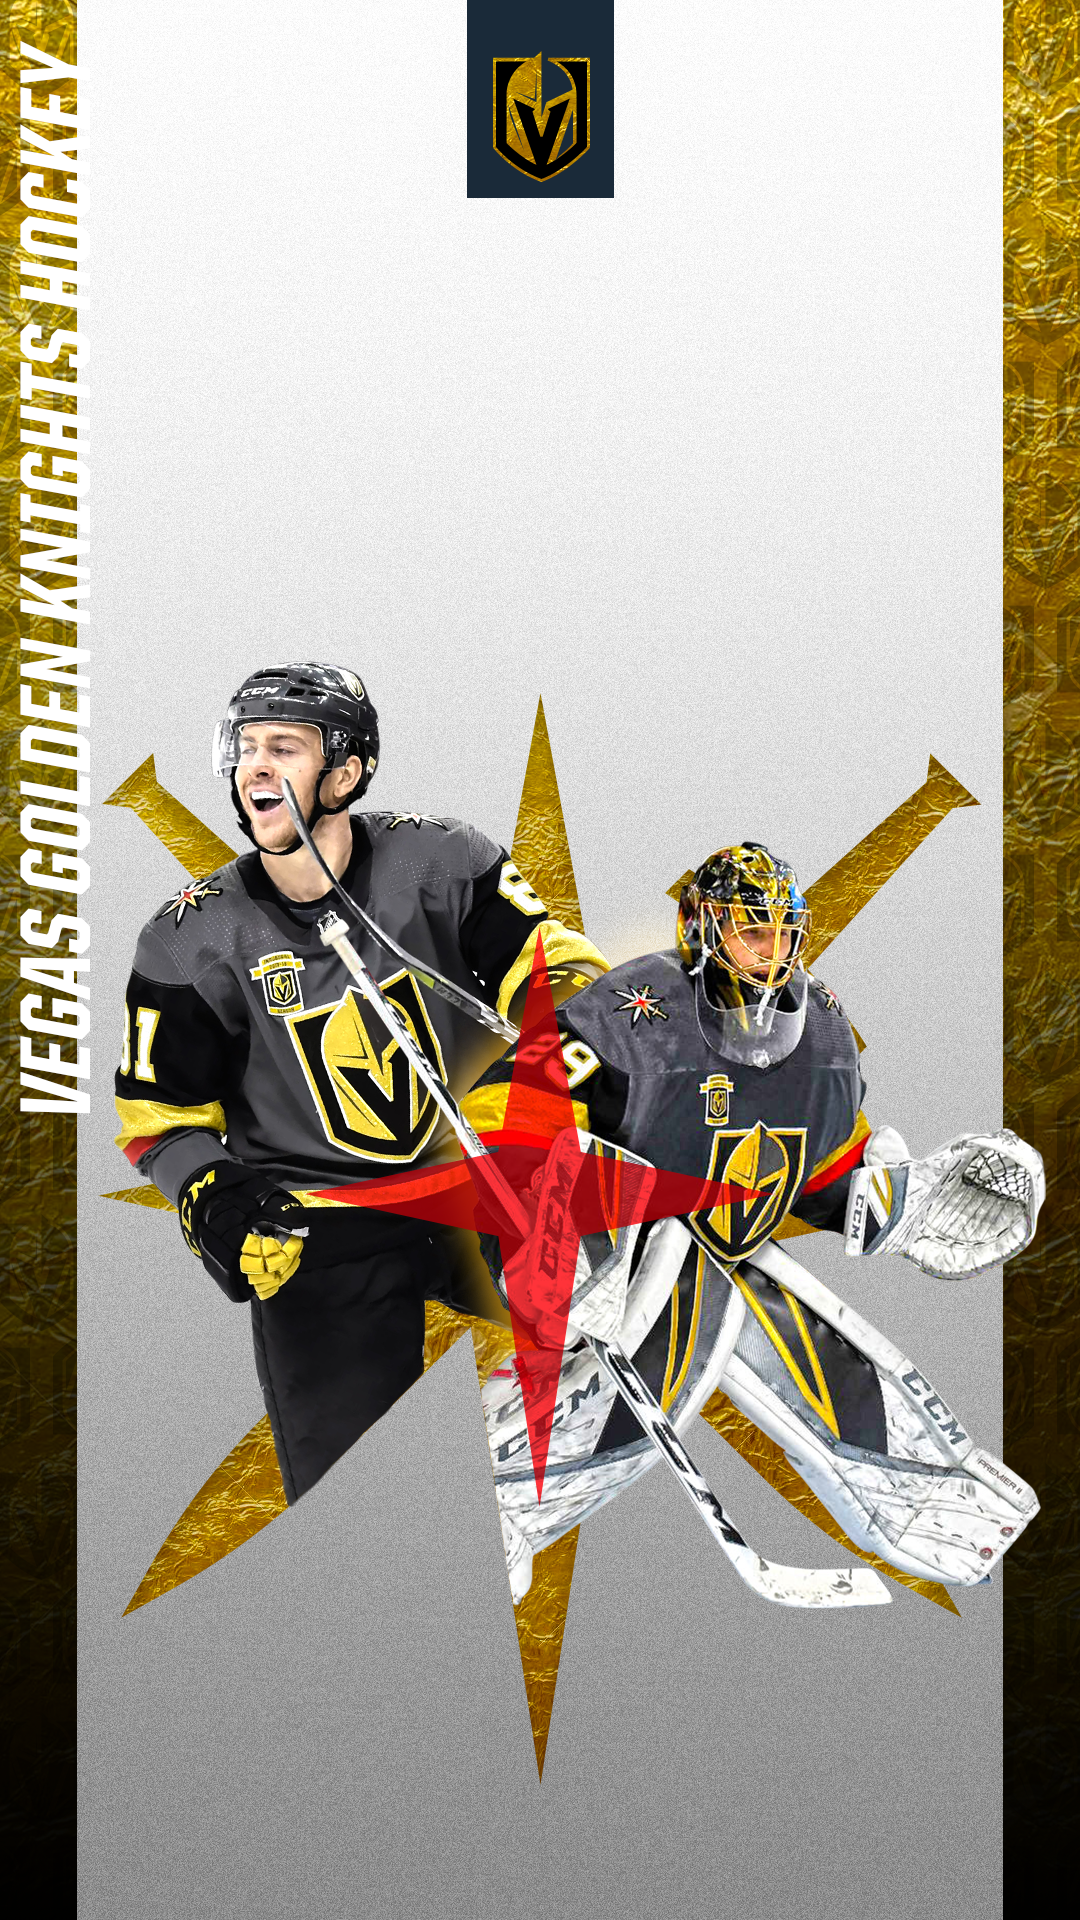 Wallpaper6_GoldenKnights.png